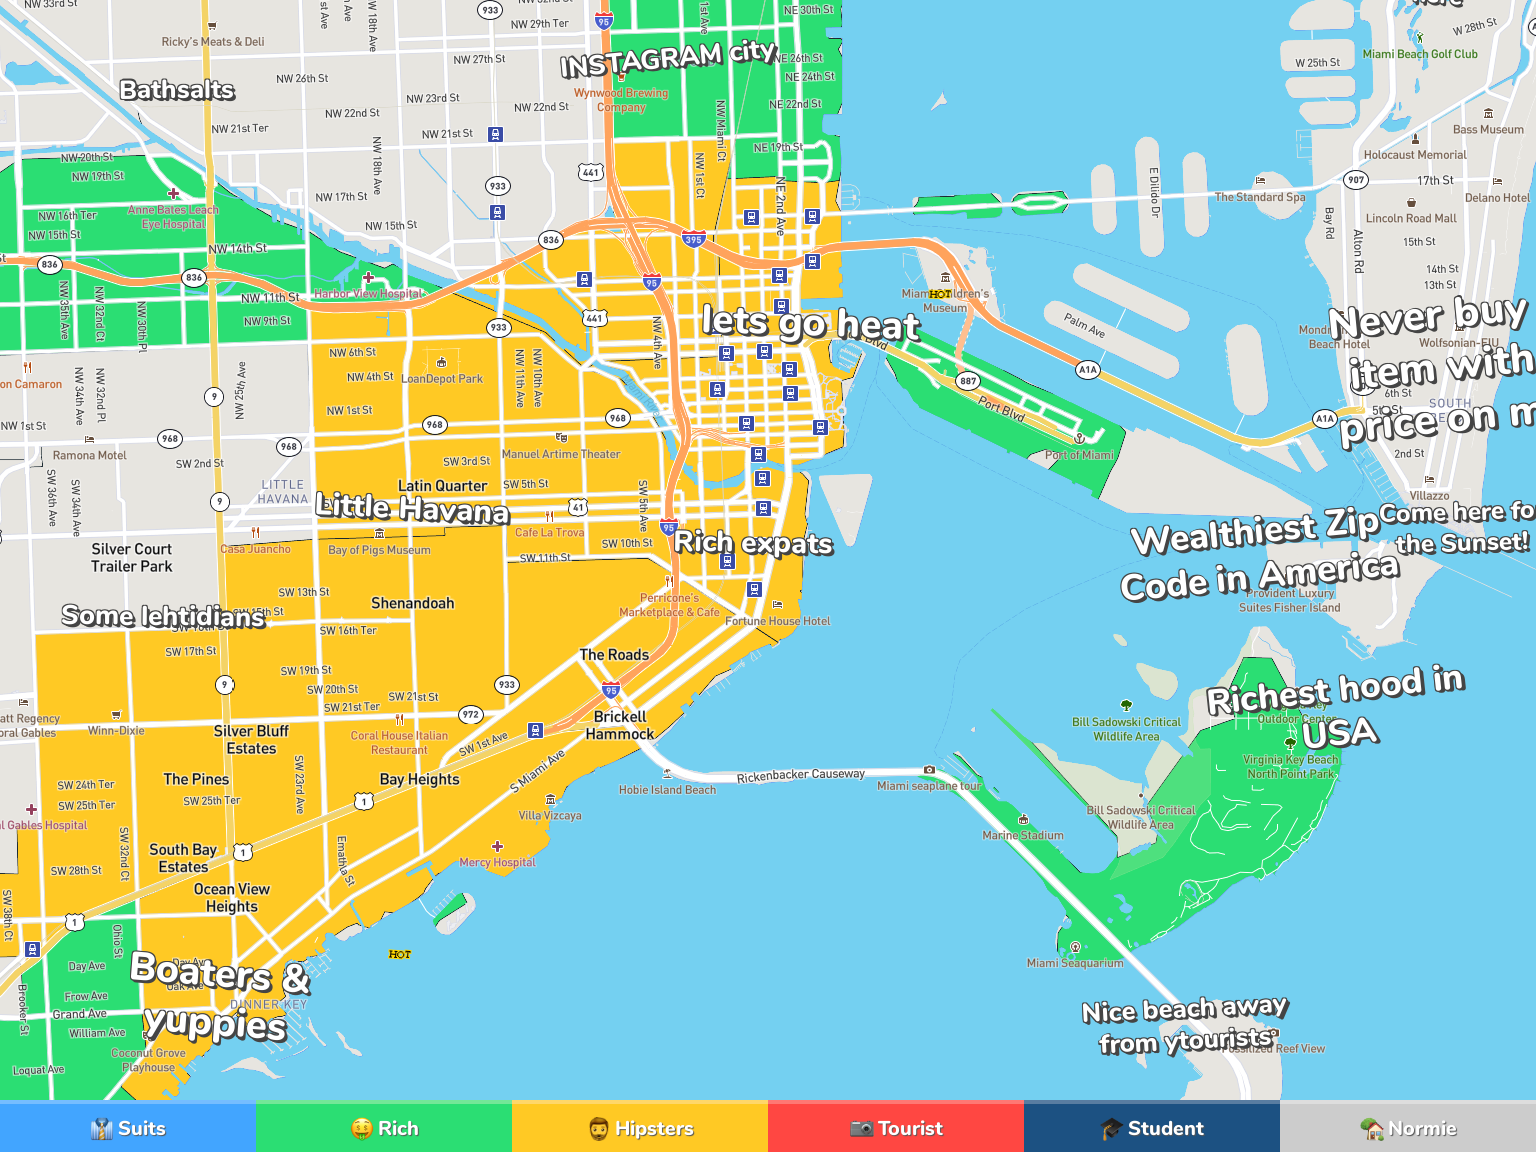 Miami Neighborhood Map In the bay area, black households are twice as likely as white households to live in neighborhoods that are at risk of gentrification. miami neighborhood map